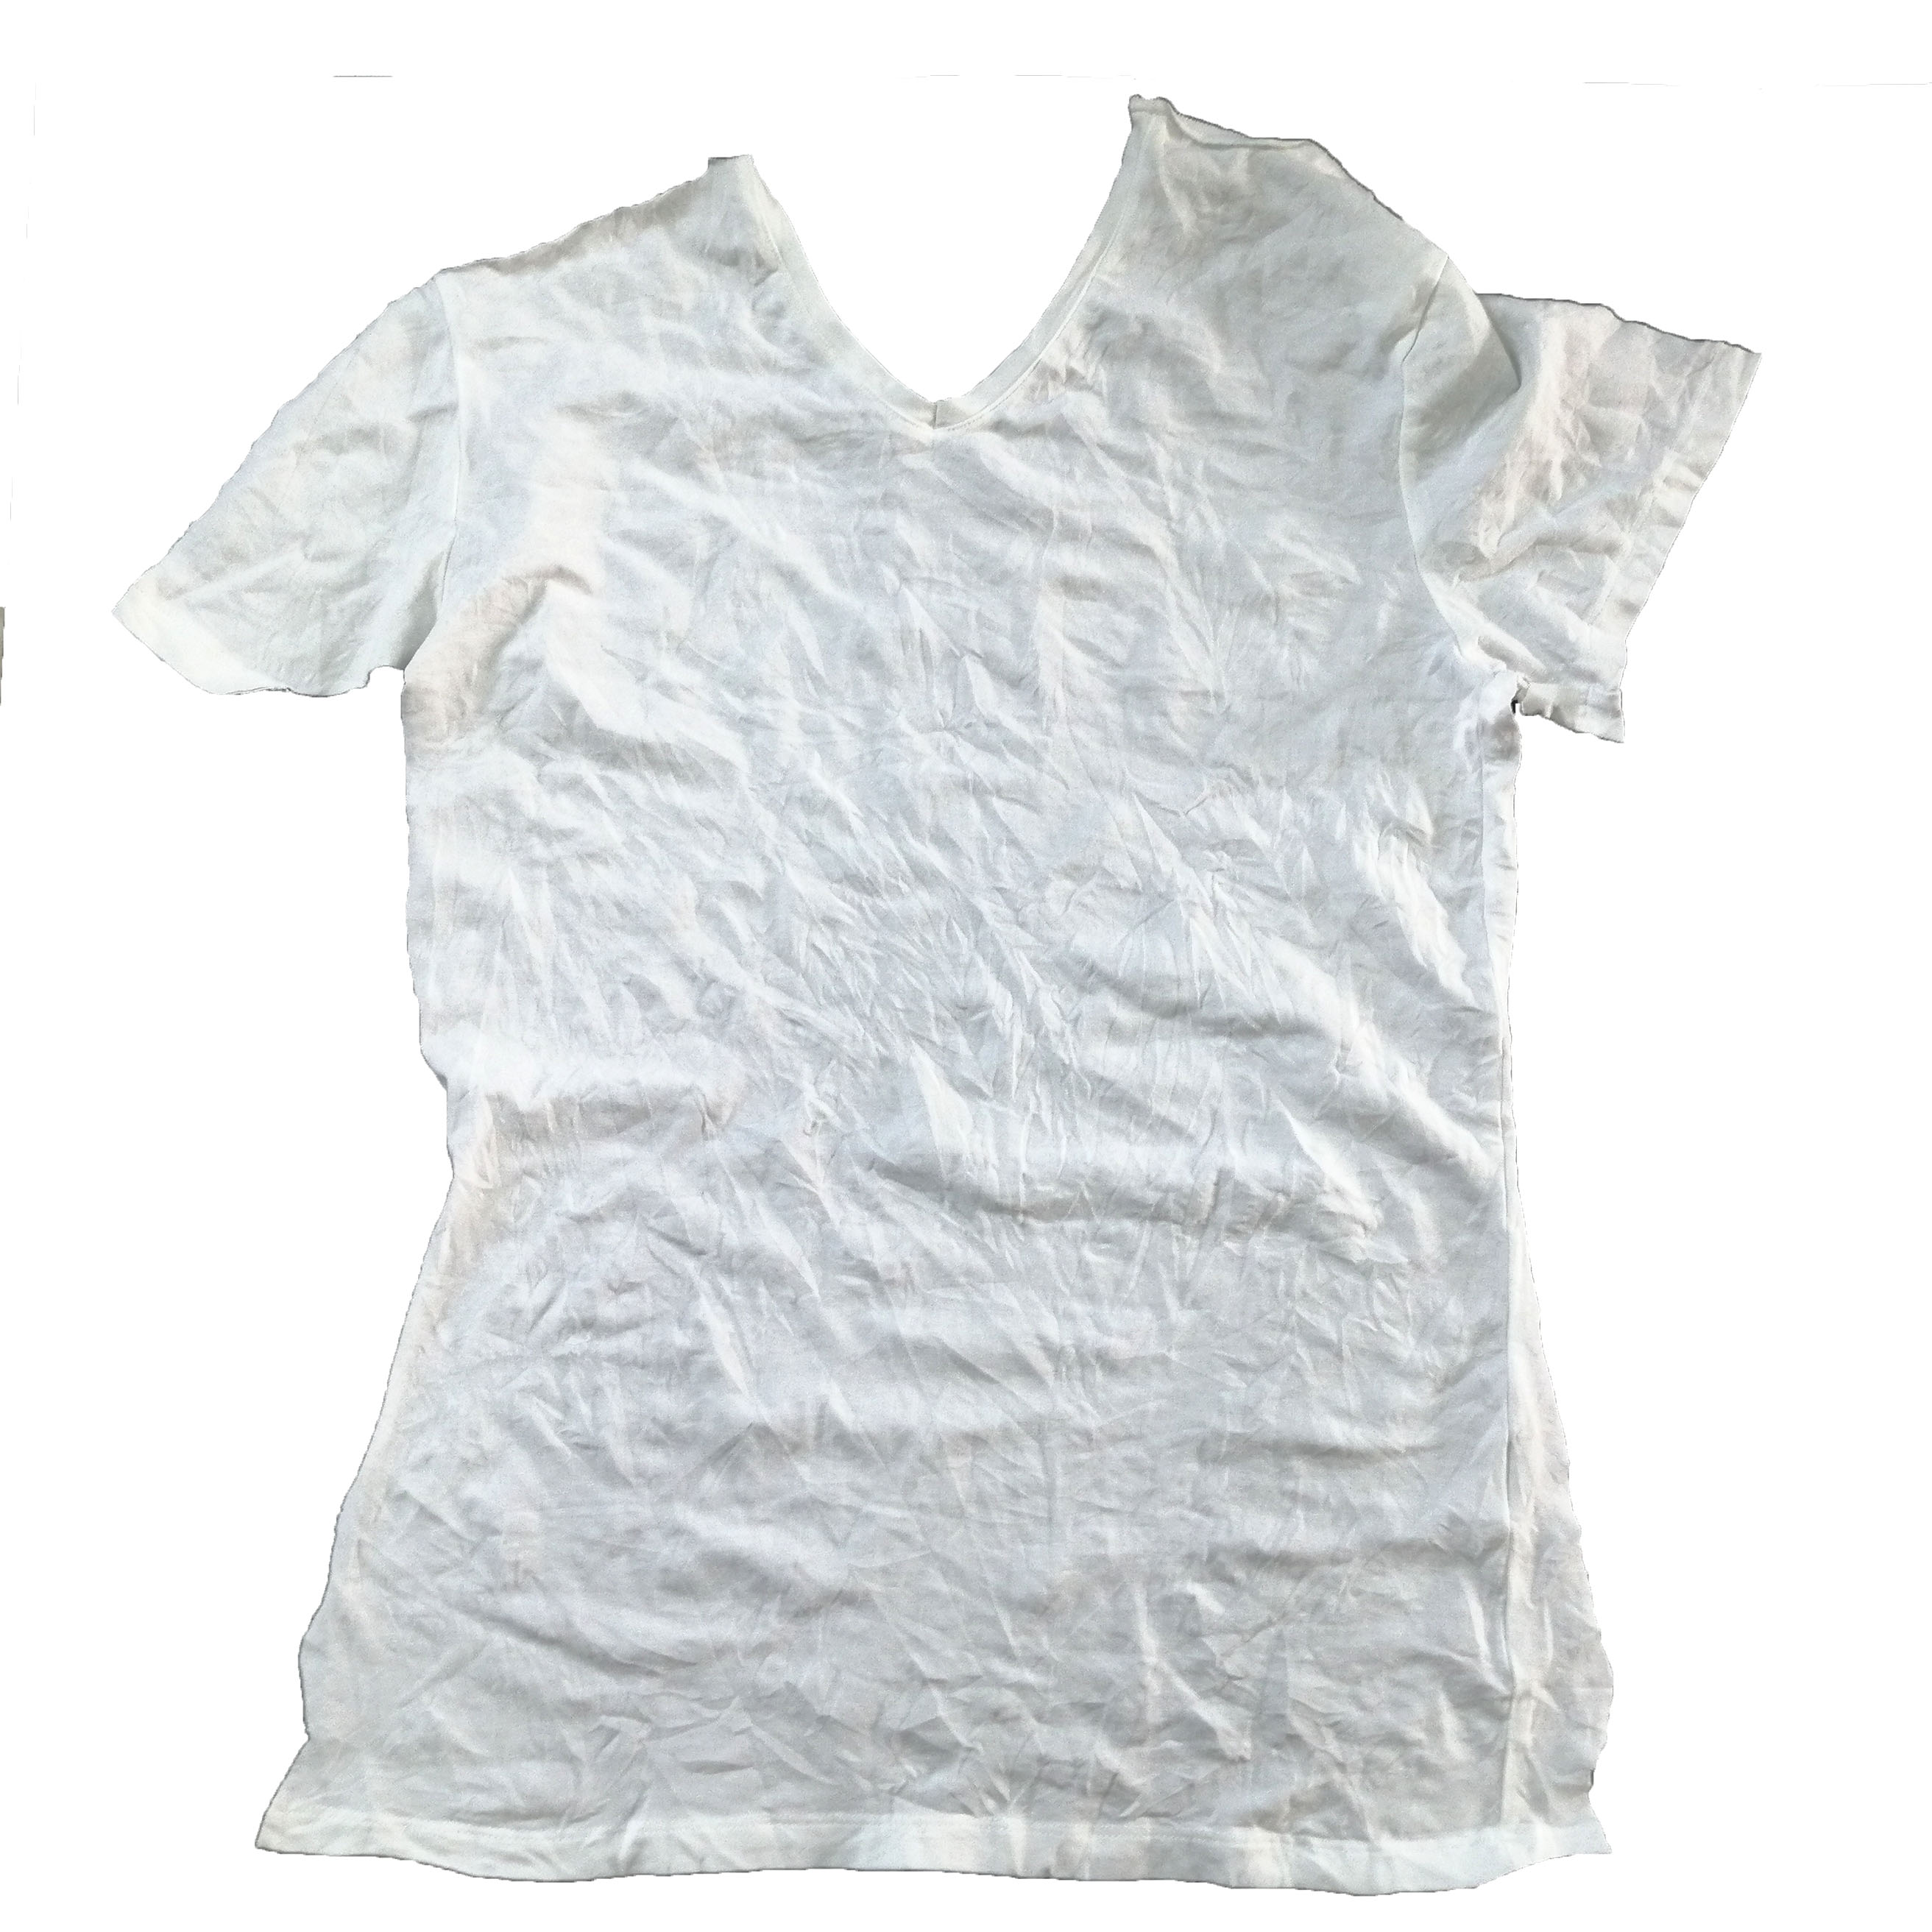 Good oil absorbent recycled wiping bag box carton package t shirt pure white textiles <strong>waste</strong> rags